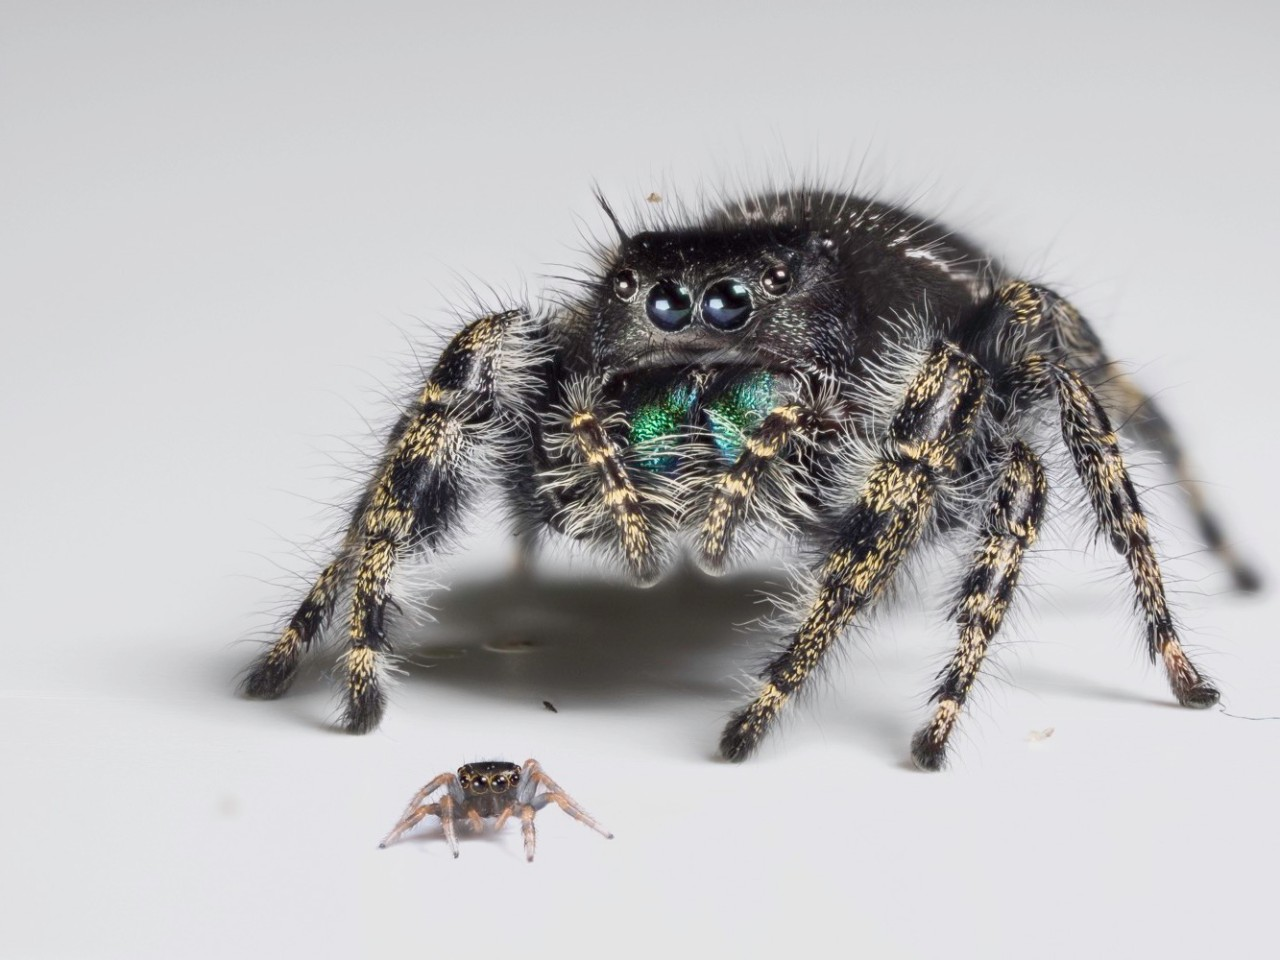 Two jumping spiders; a tiny juvenile and a larger adult. photo/Daniel Zurek